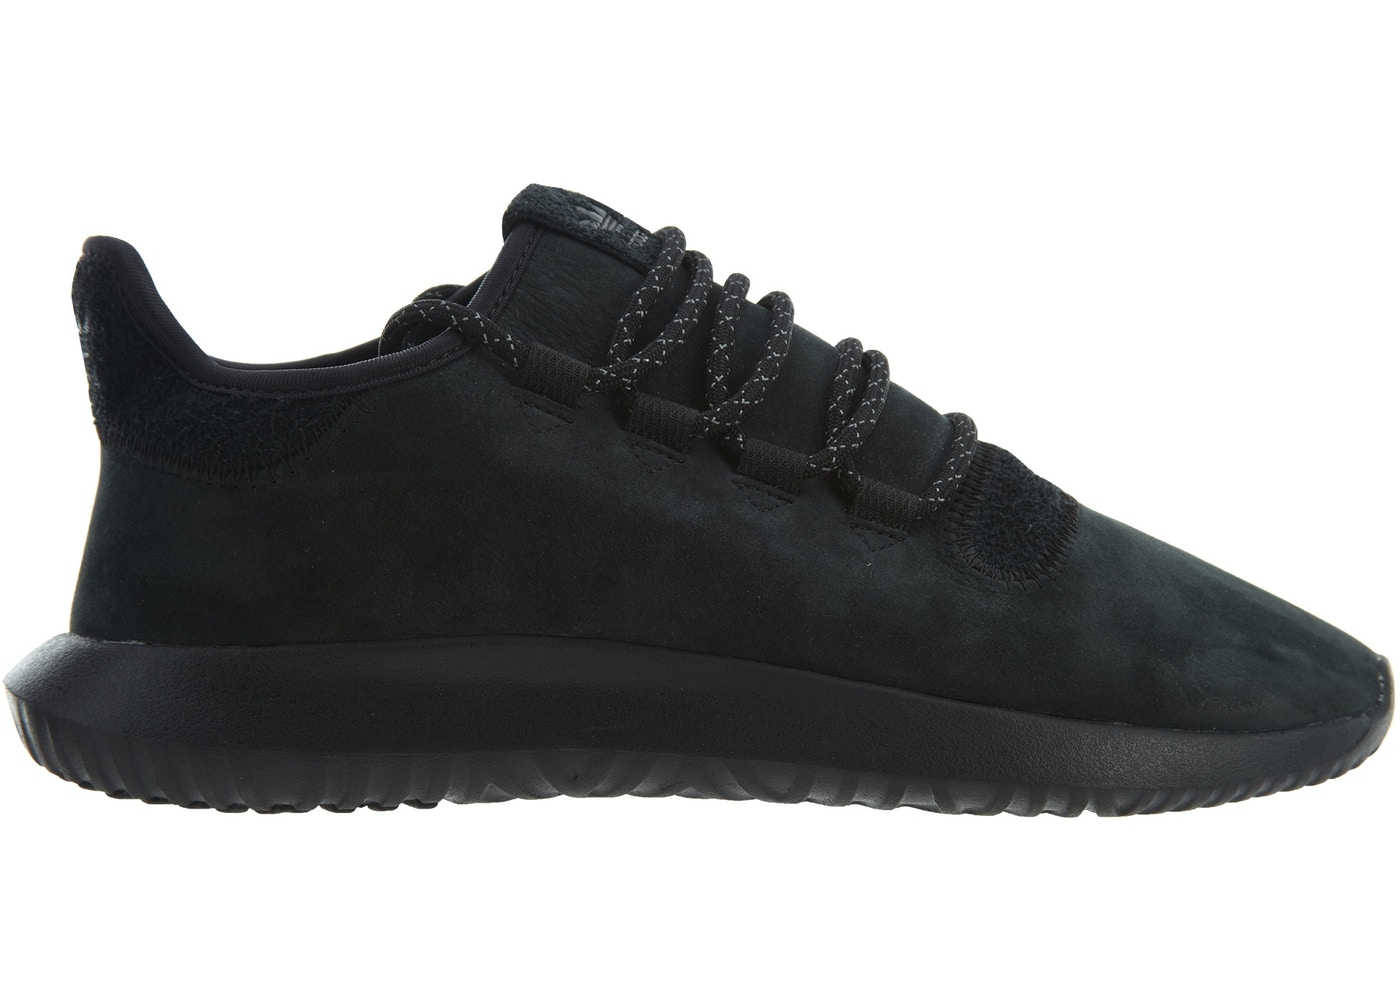 on sale 2579e 78615 adidas Tubular Shadow Black Black-White